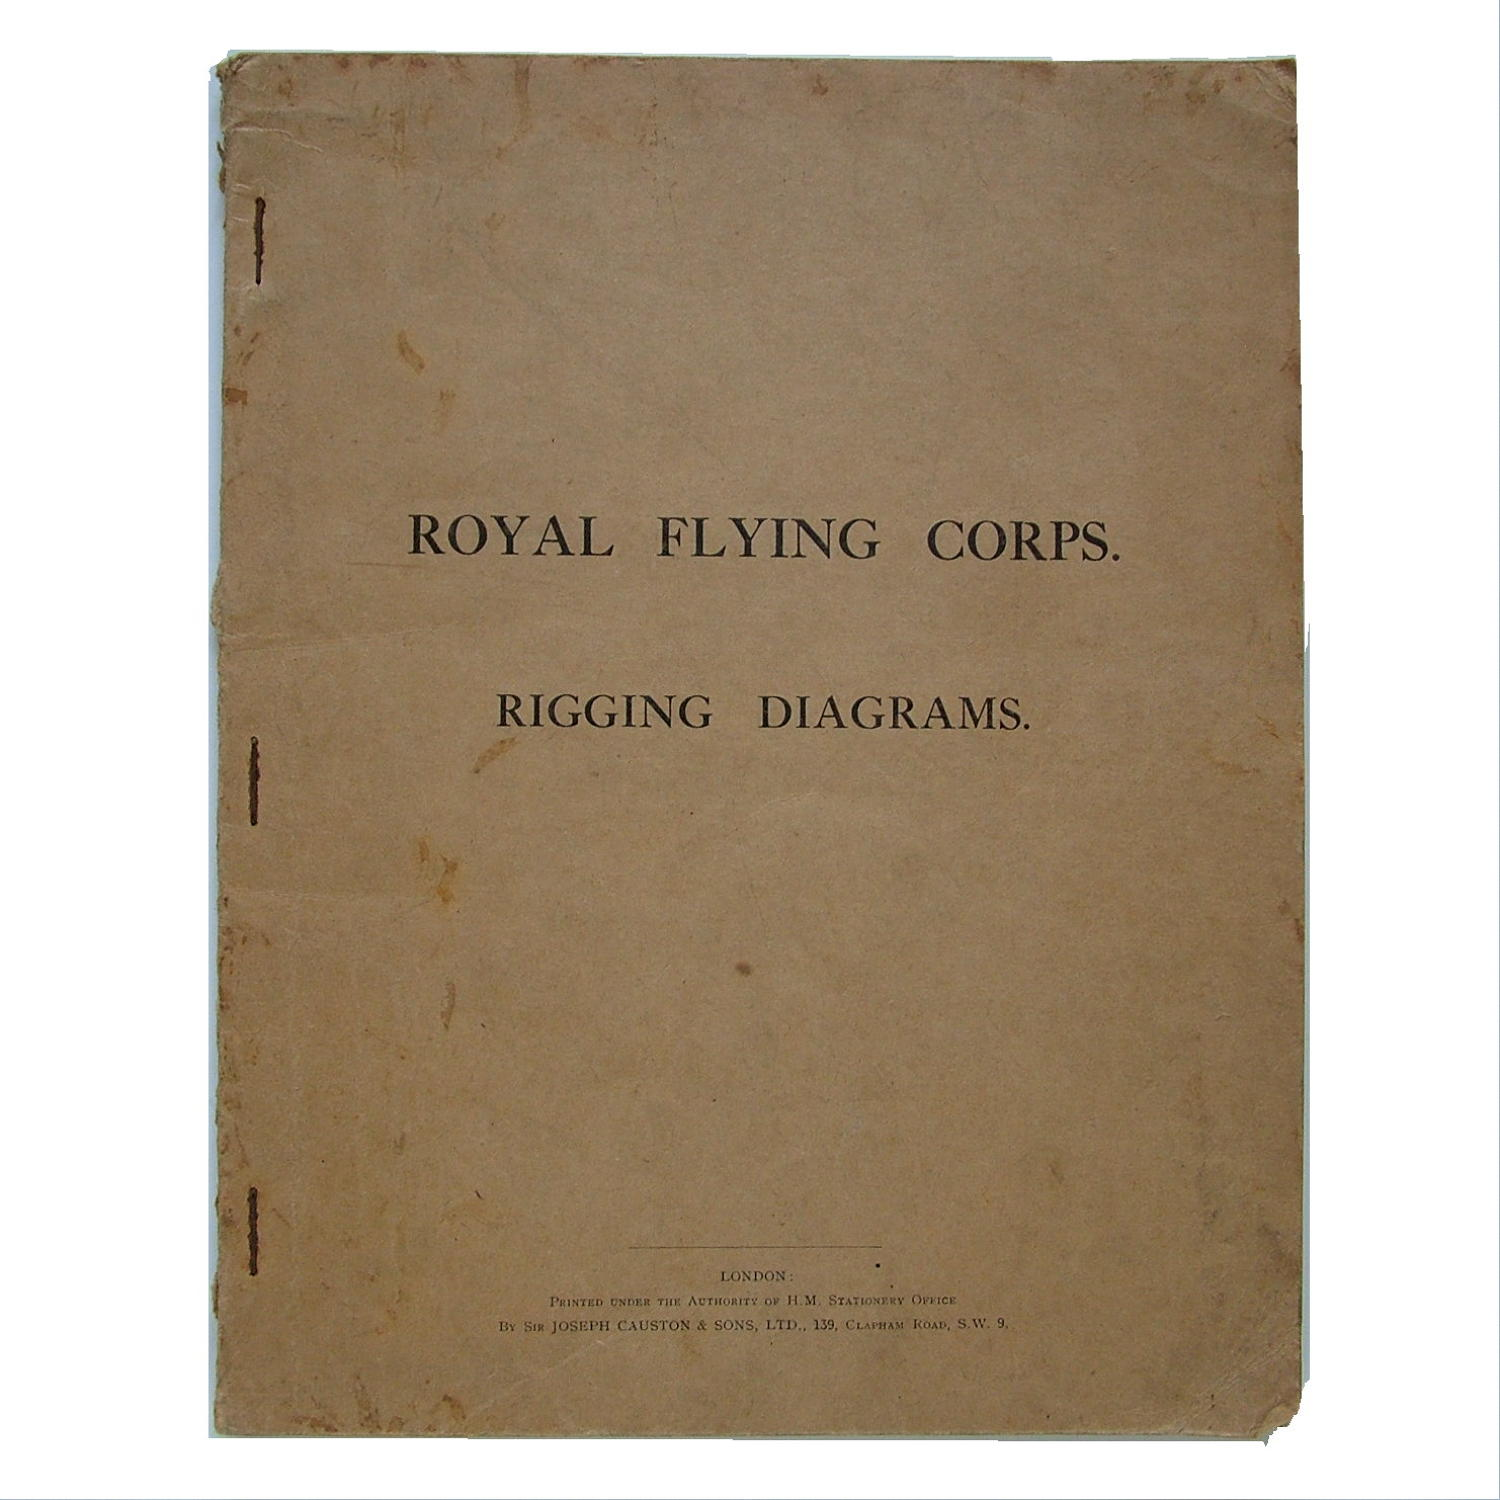 Royal Flying Corps rigging diagrams